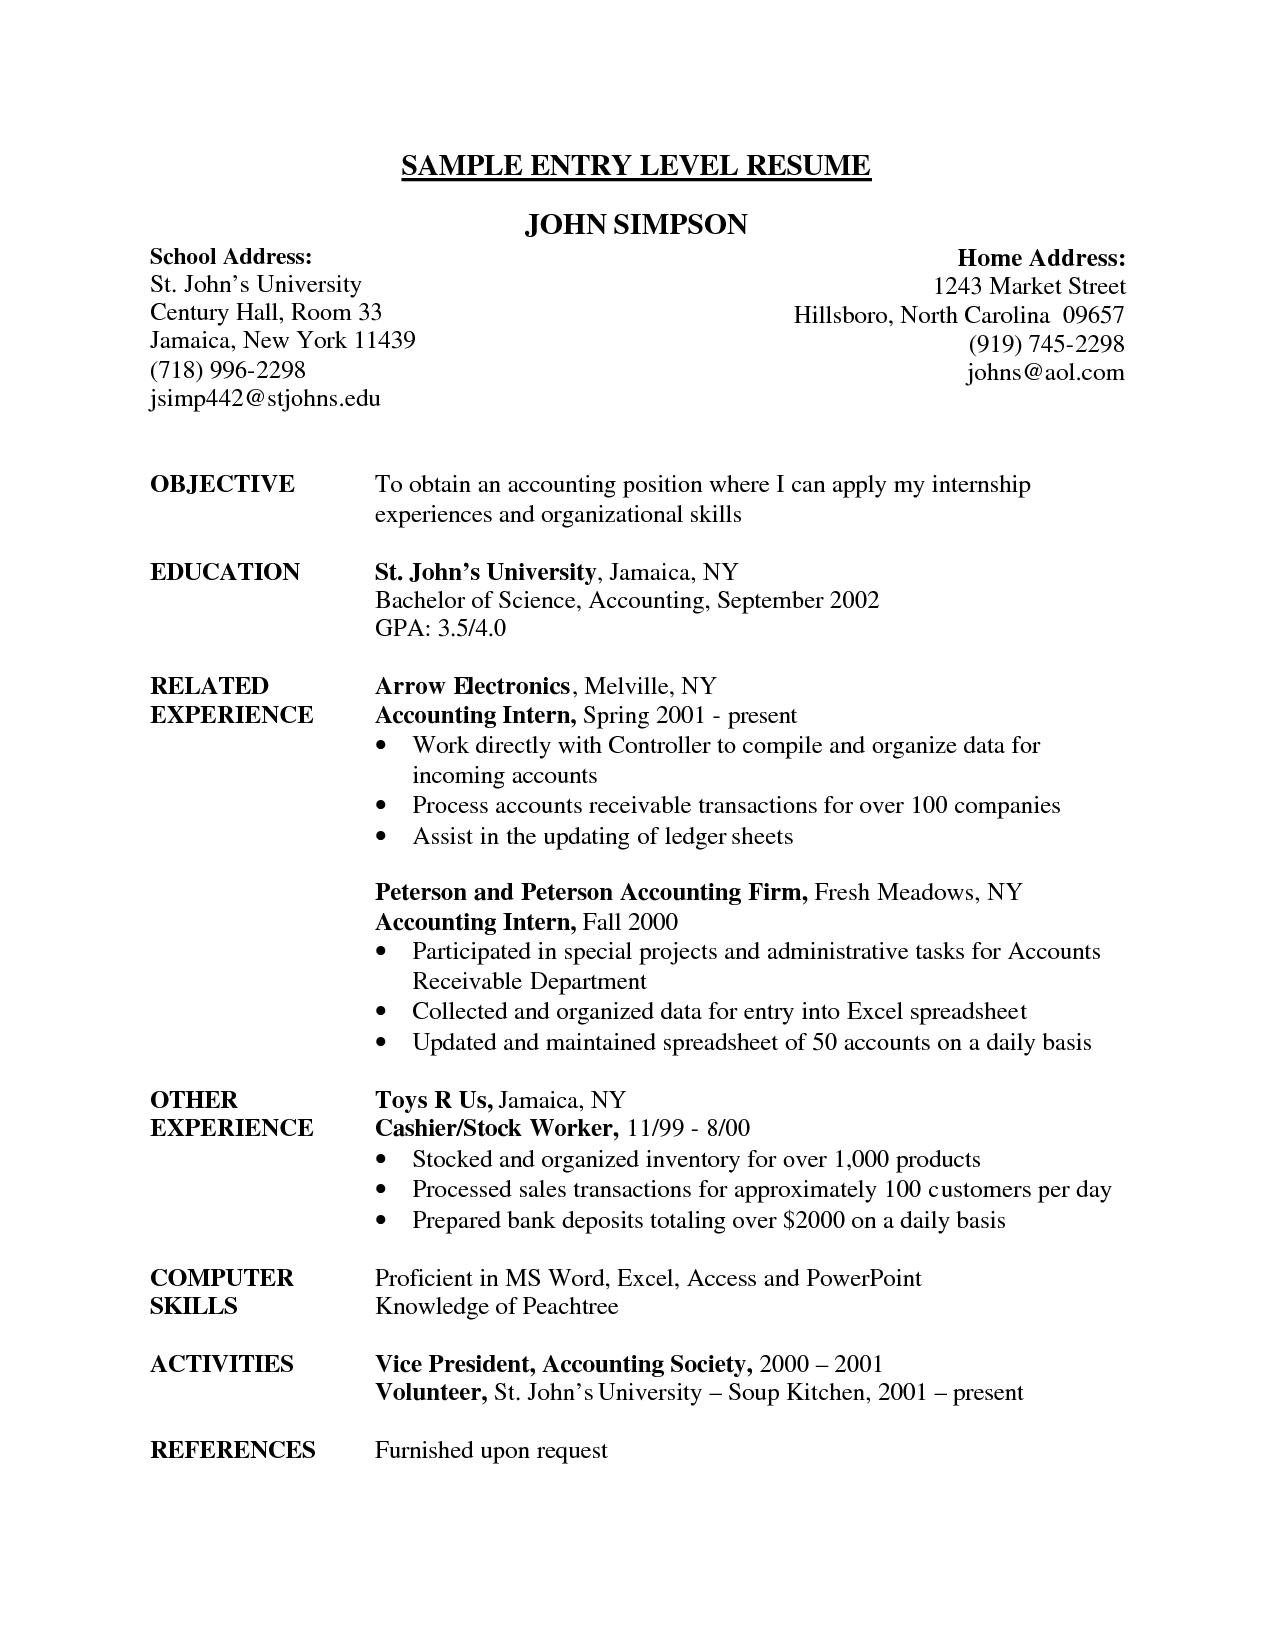 resume Related Experience Resume entry level accounting resume sample objective related experience experience